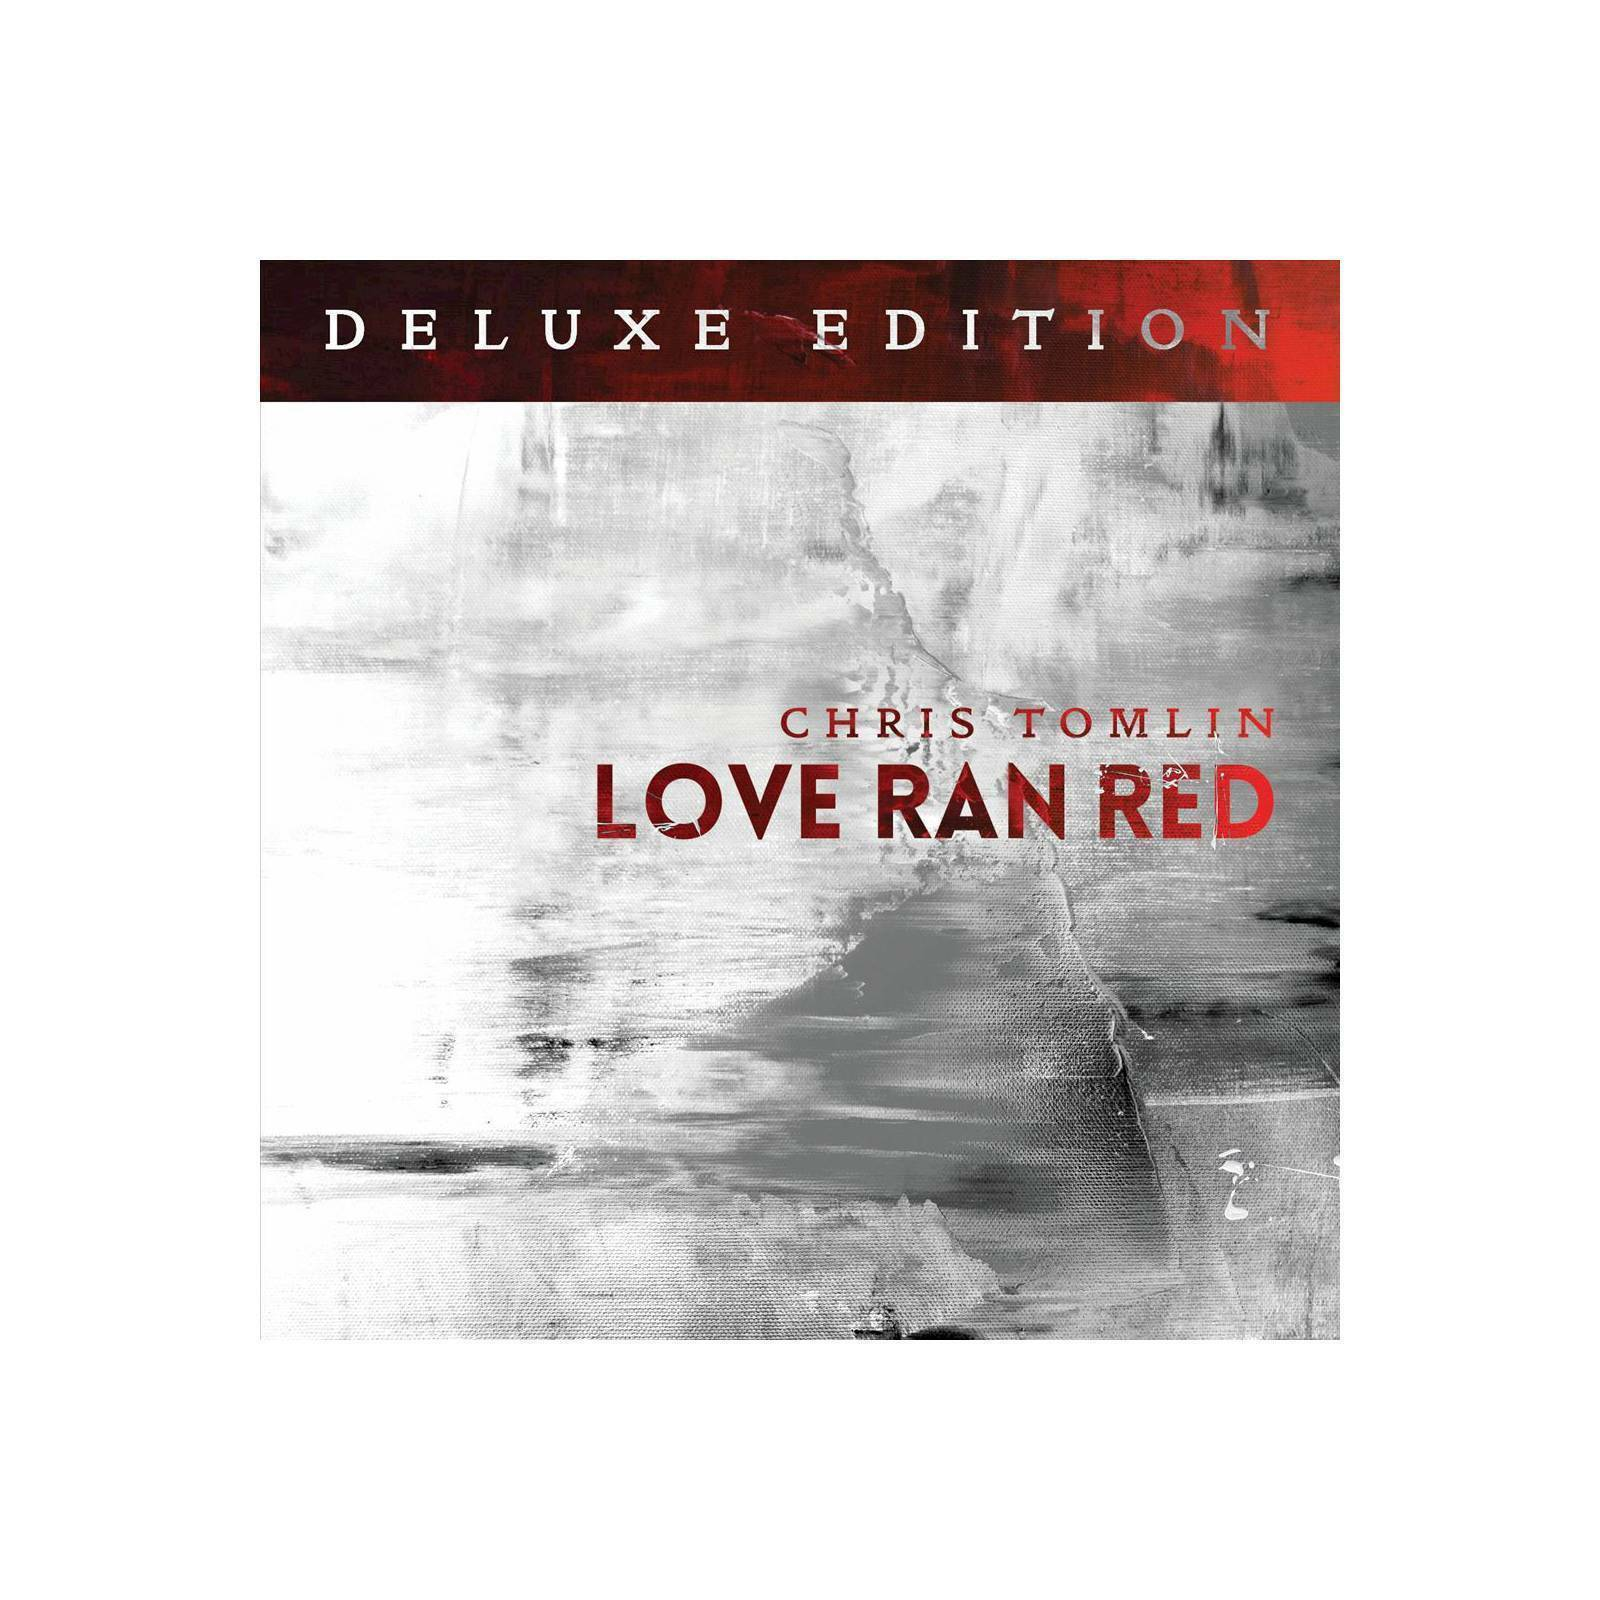 Love Ran Red [Deluxe Edition] by Chris Tomlin (CD, 2014, 2 Discs ...